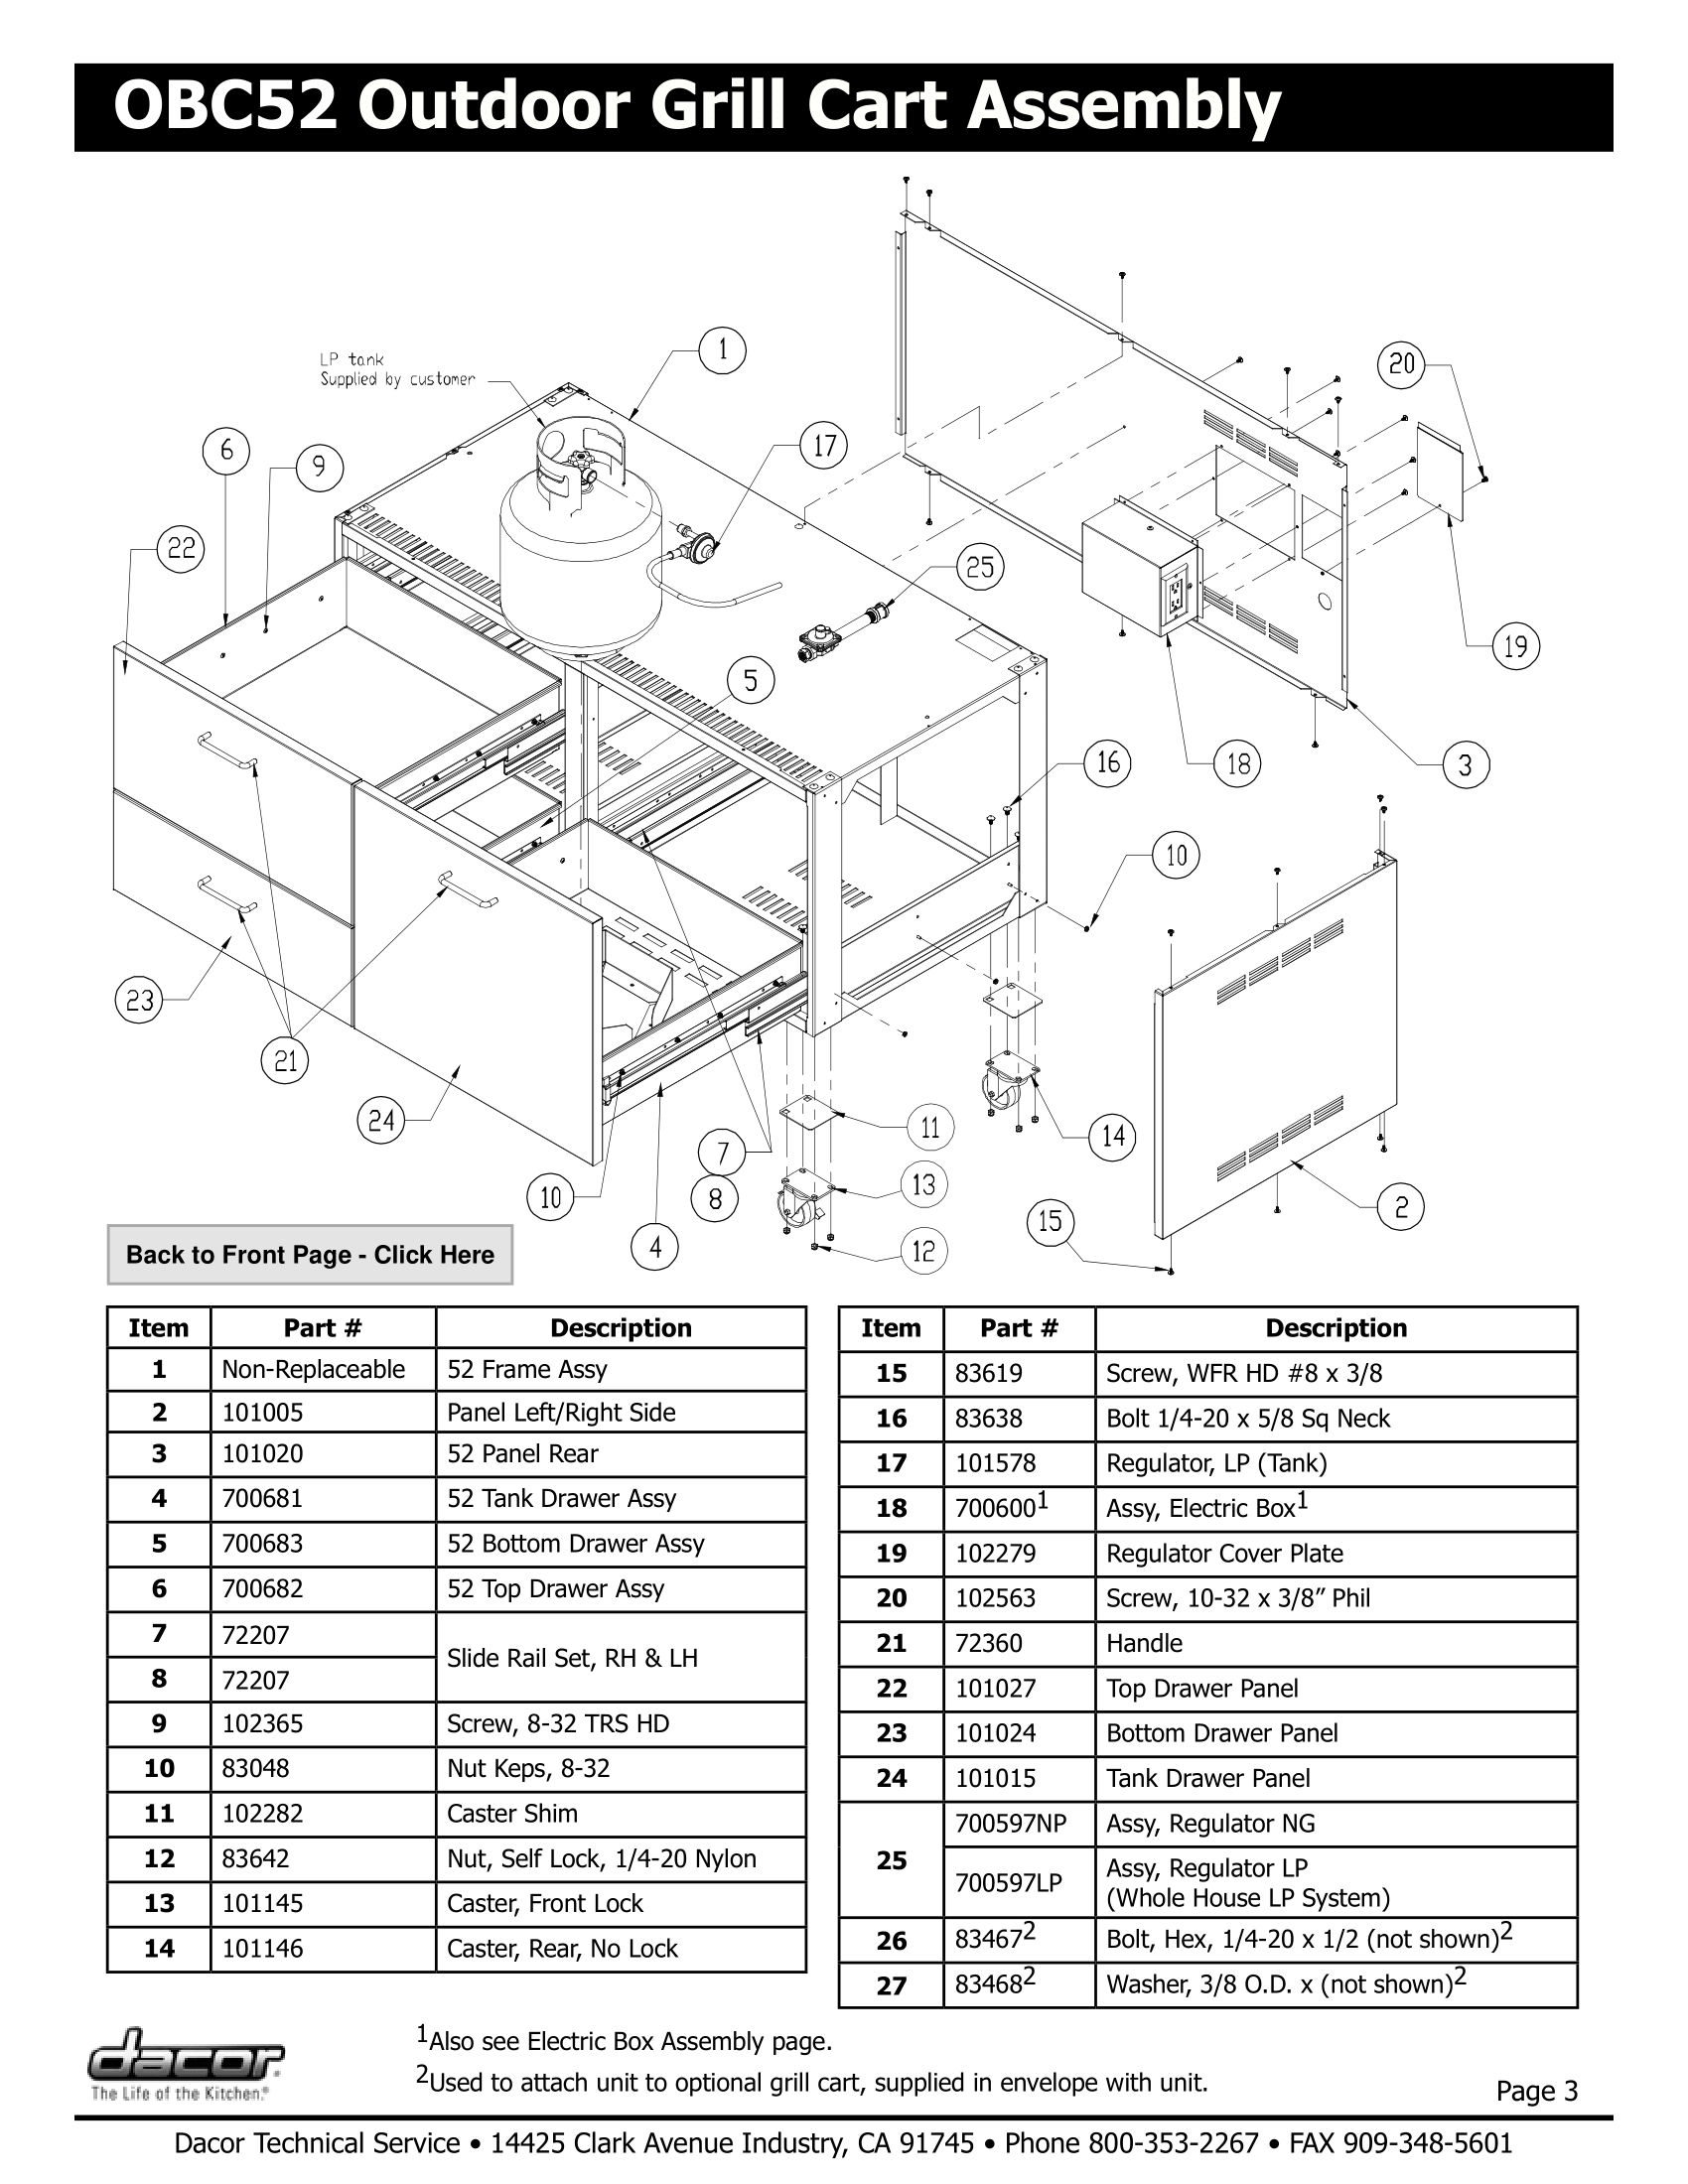 Dacor OBC52 Assembly Schematic